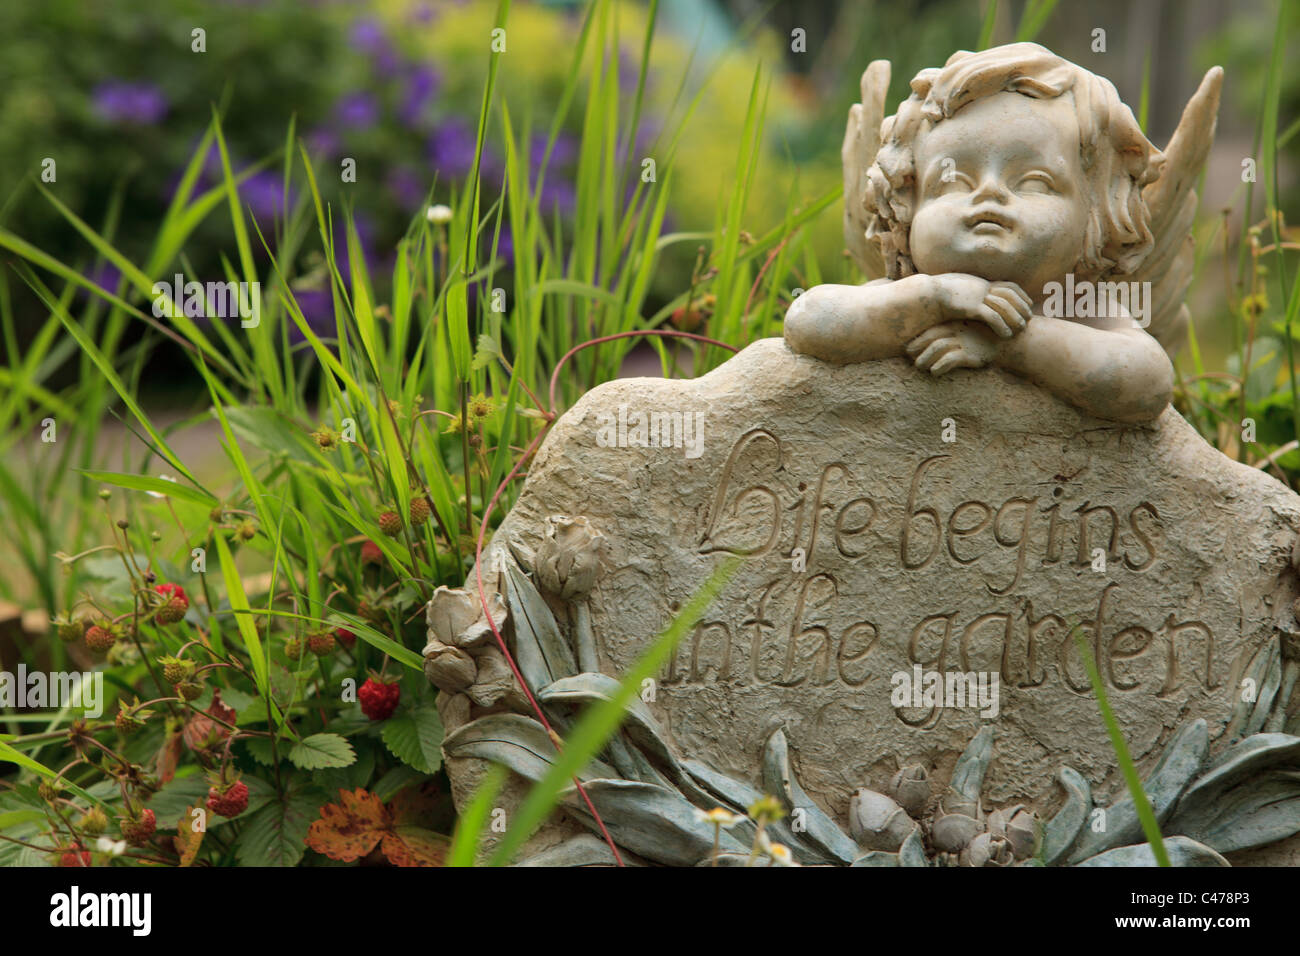 Angelic statue in garden, summertime - Stock Image